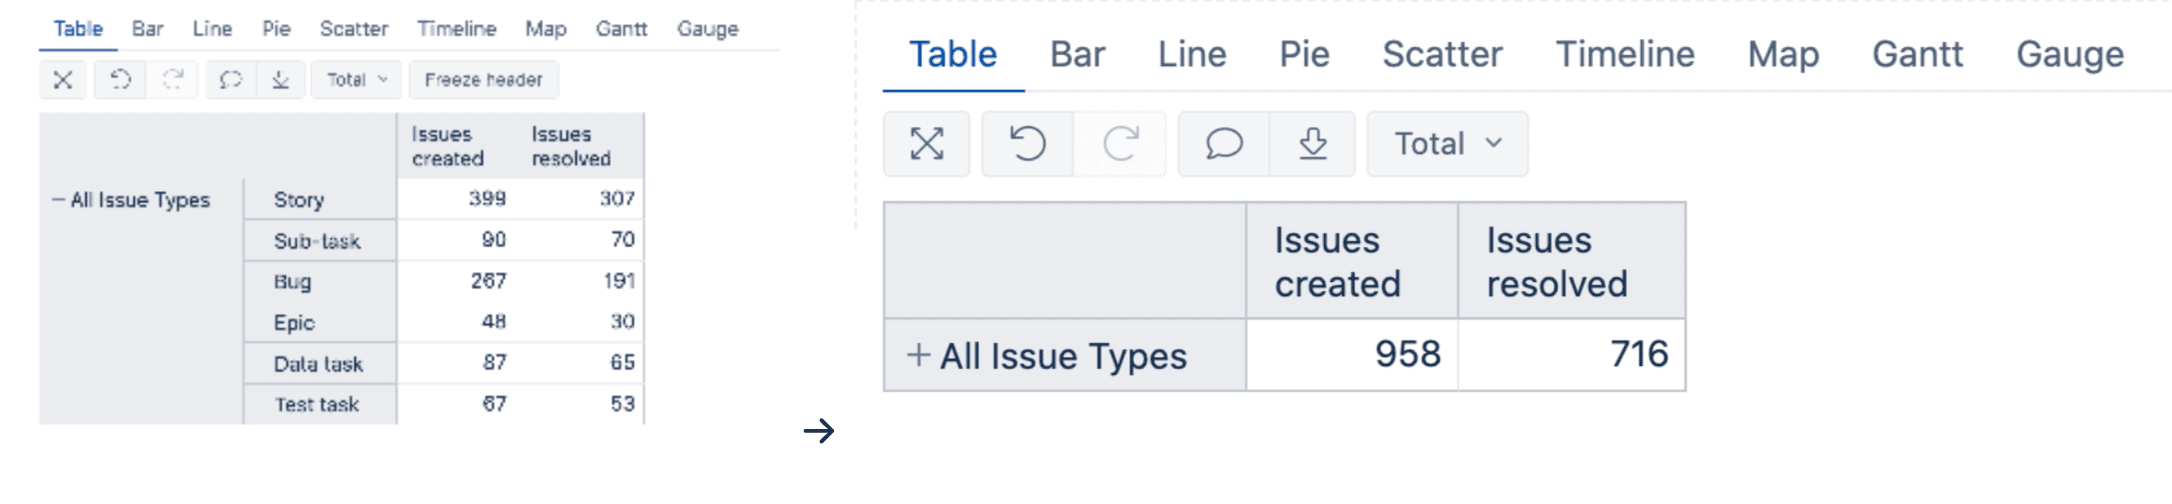 issue types table in eazybi for Jira